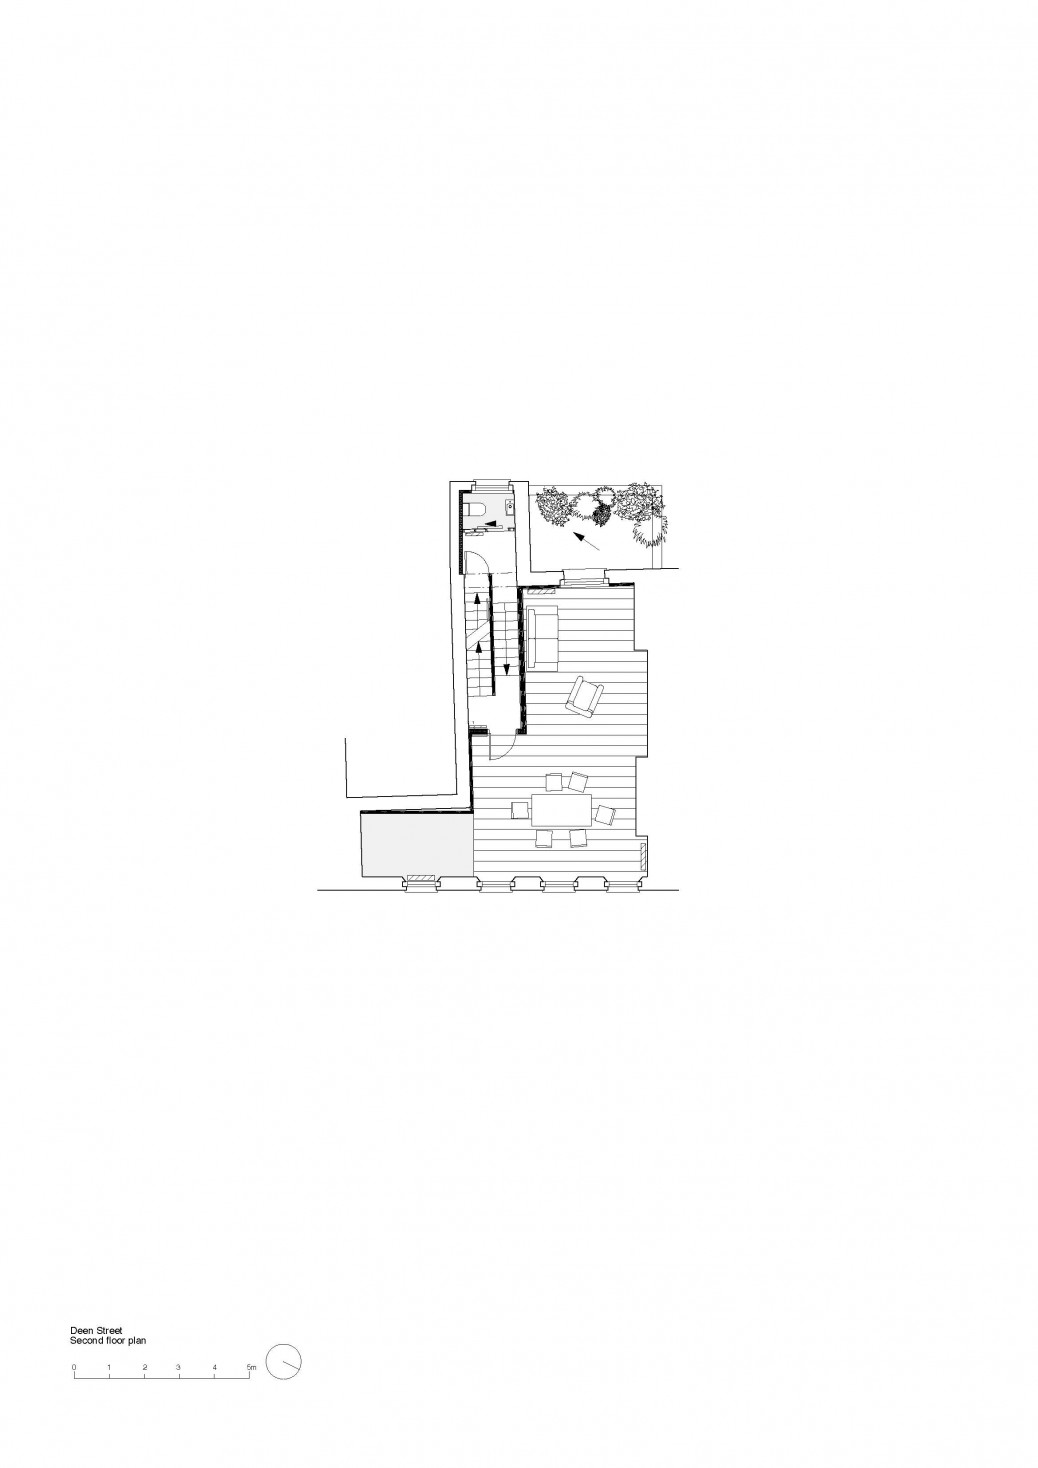 Dean Street second floor plan